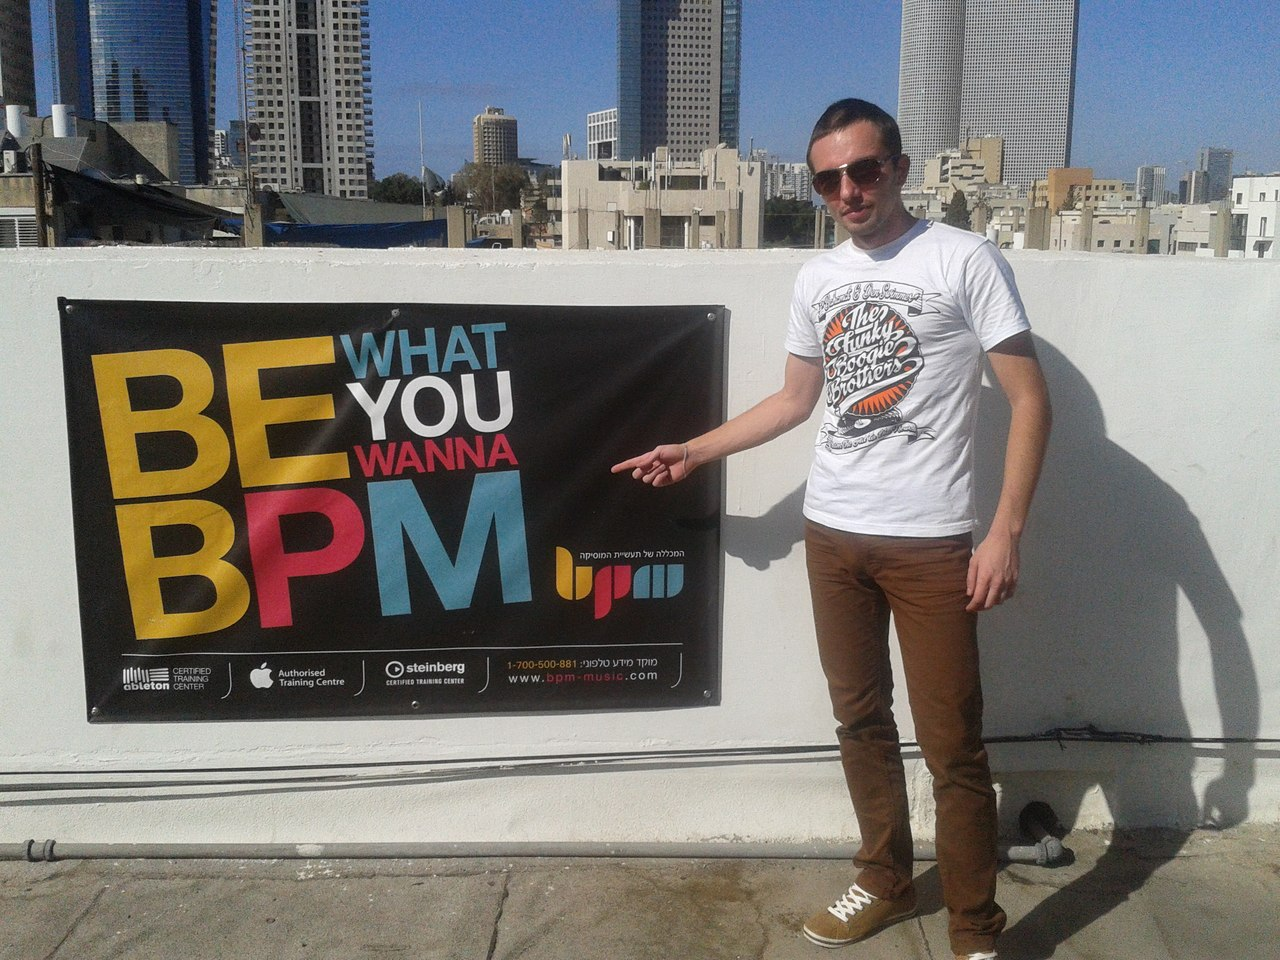 Be what you wanna bpm?